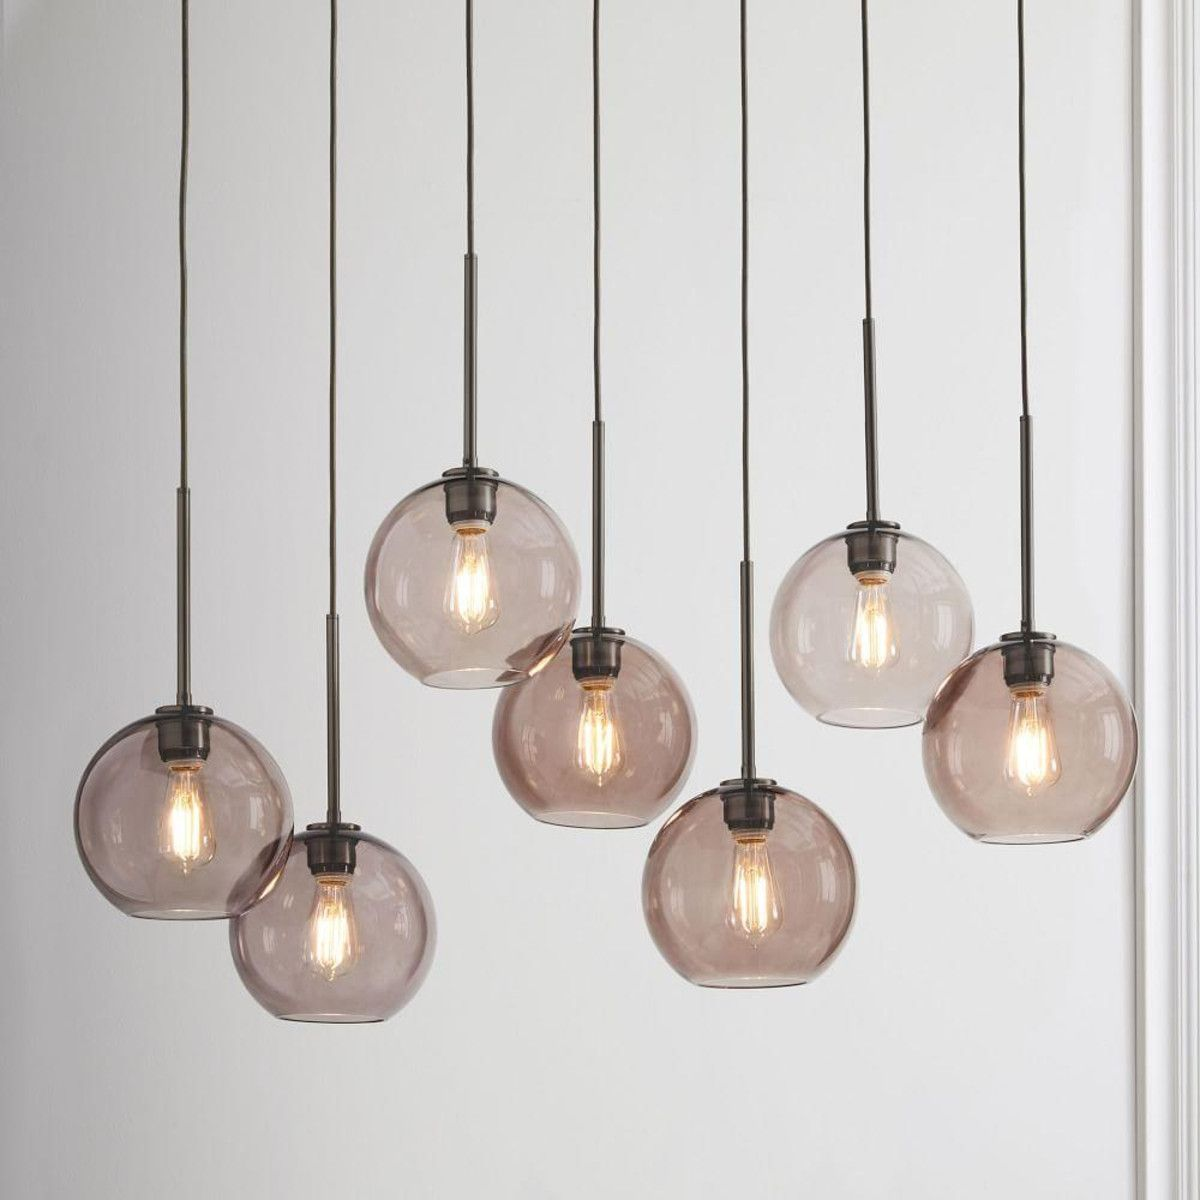 Sculptural glass globe 7 light chandelier small house sculptural glass globe 7 light chandelier small aloadofball Gallery